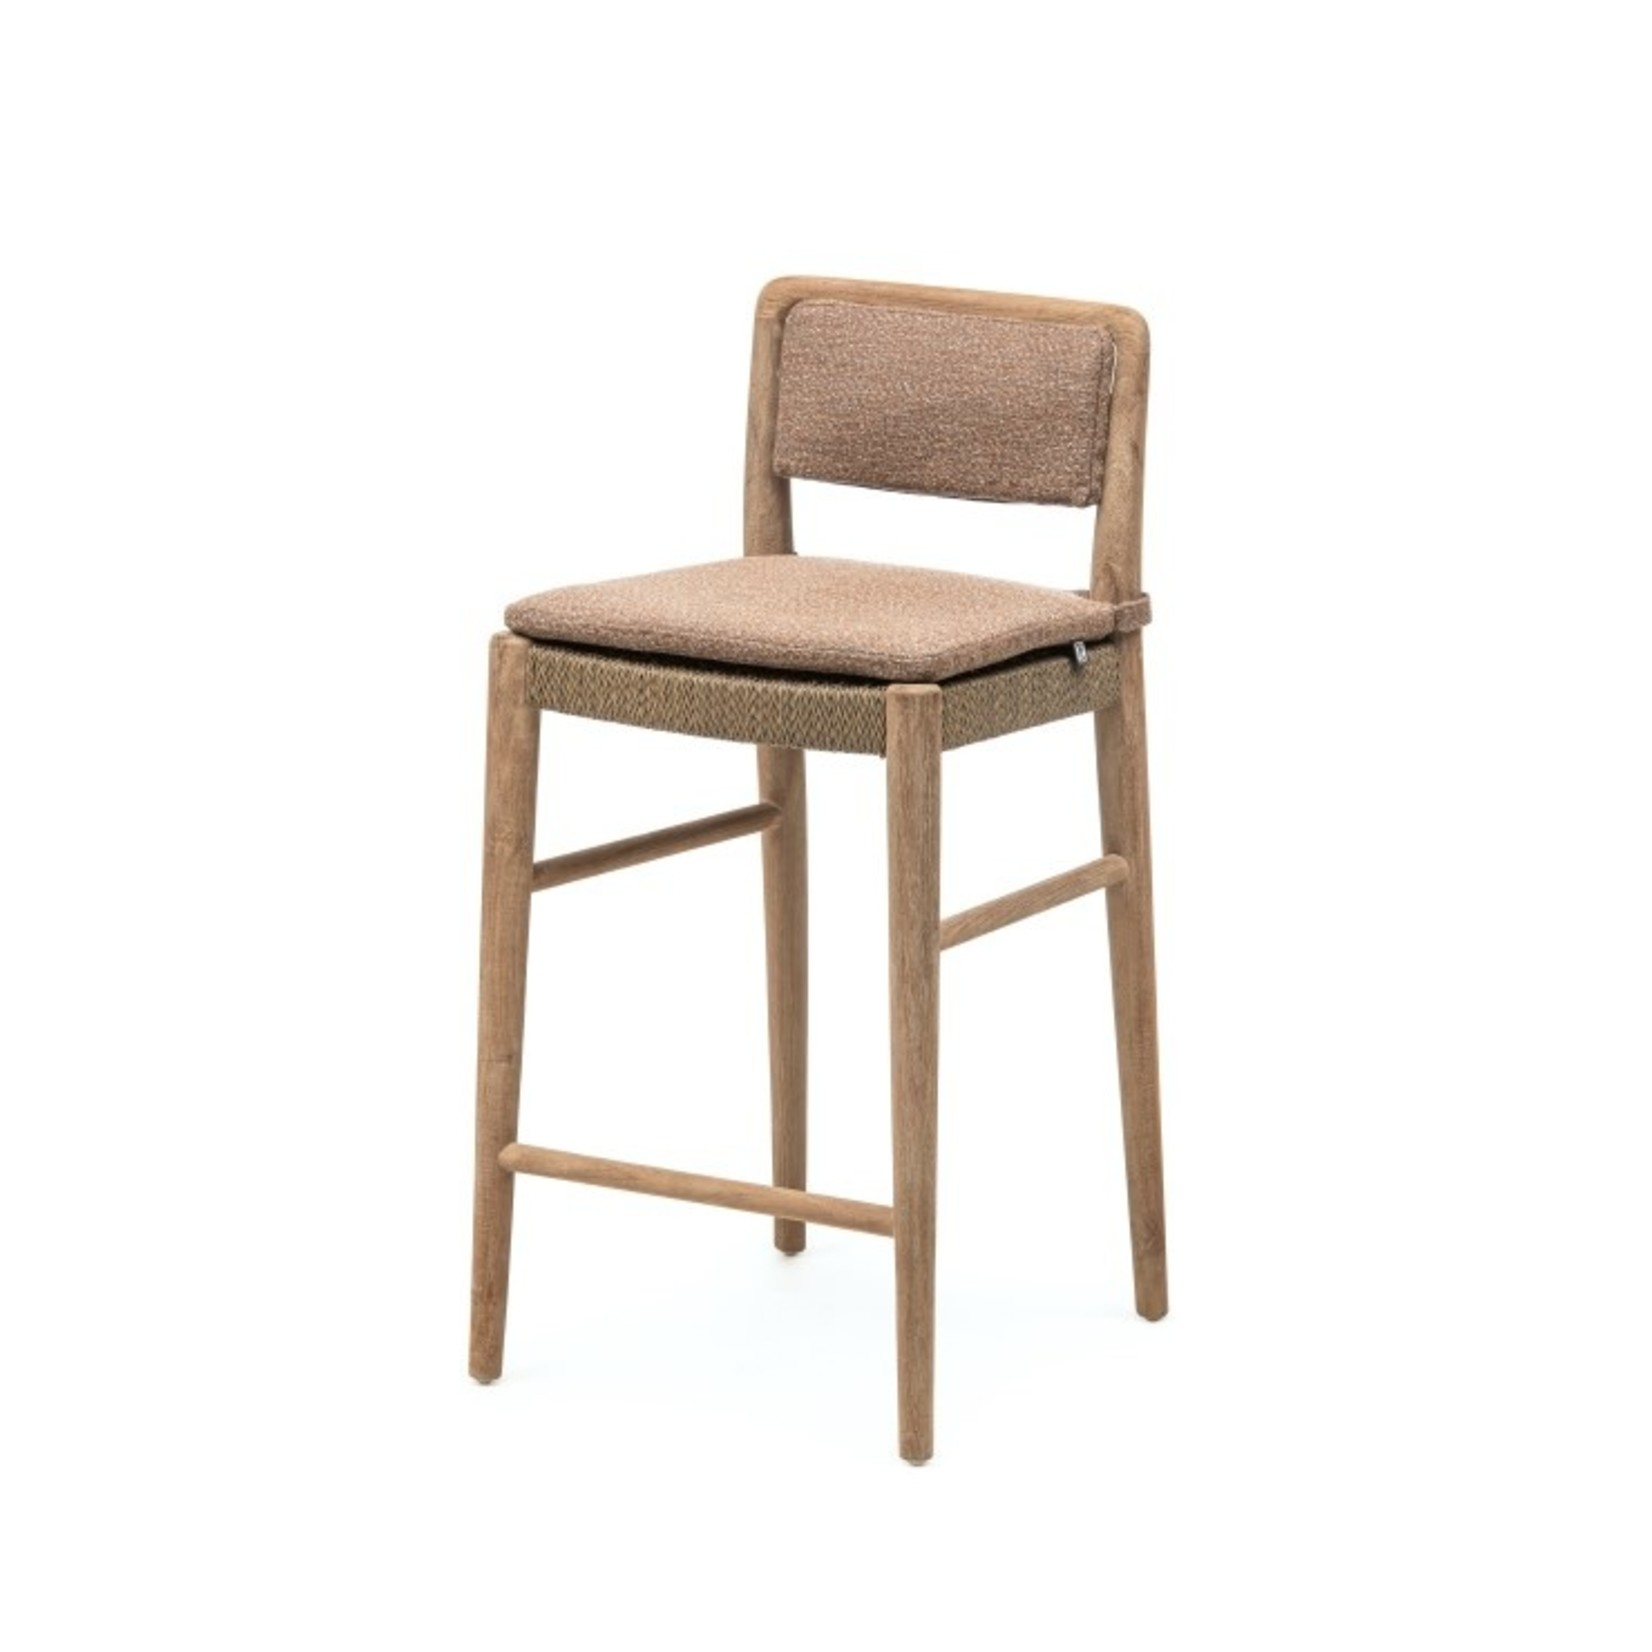 Gommaire Bar Chair Jared | Teak Natural Gray / PE Wicker Antique Weed